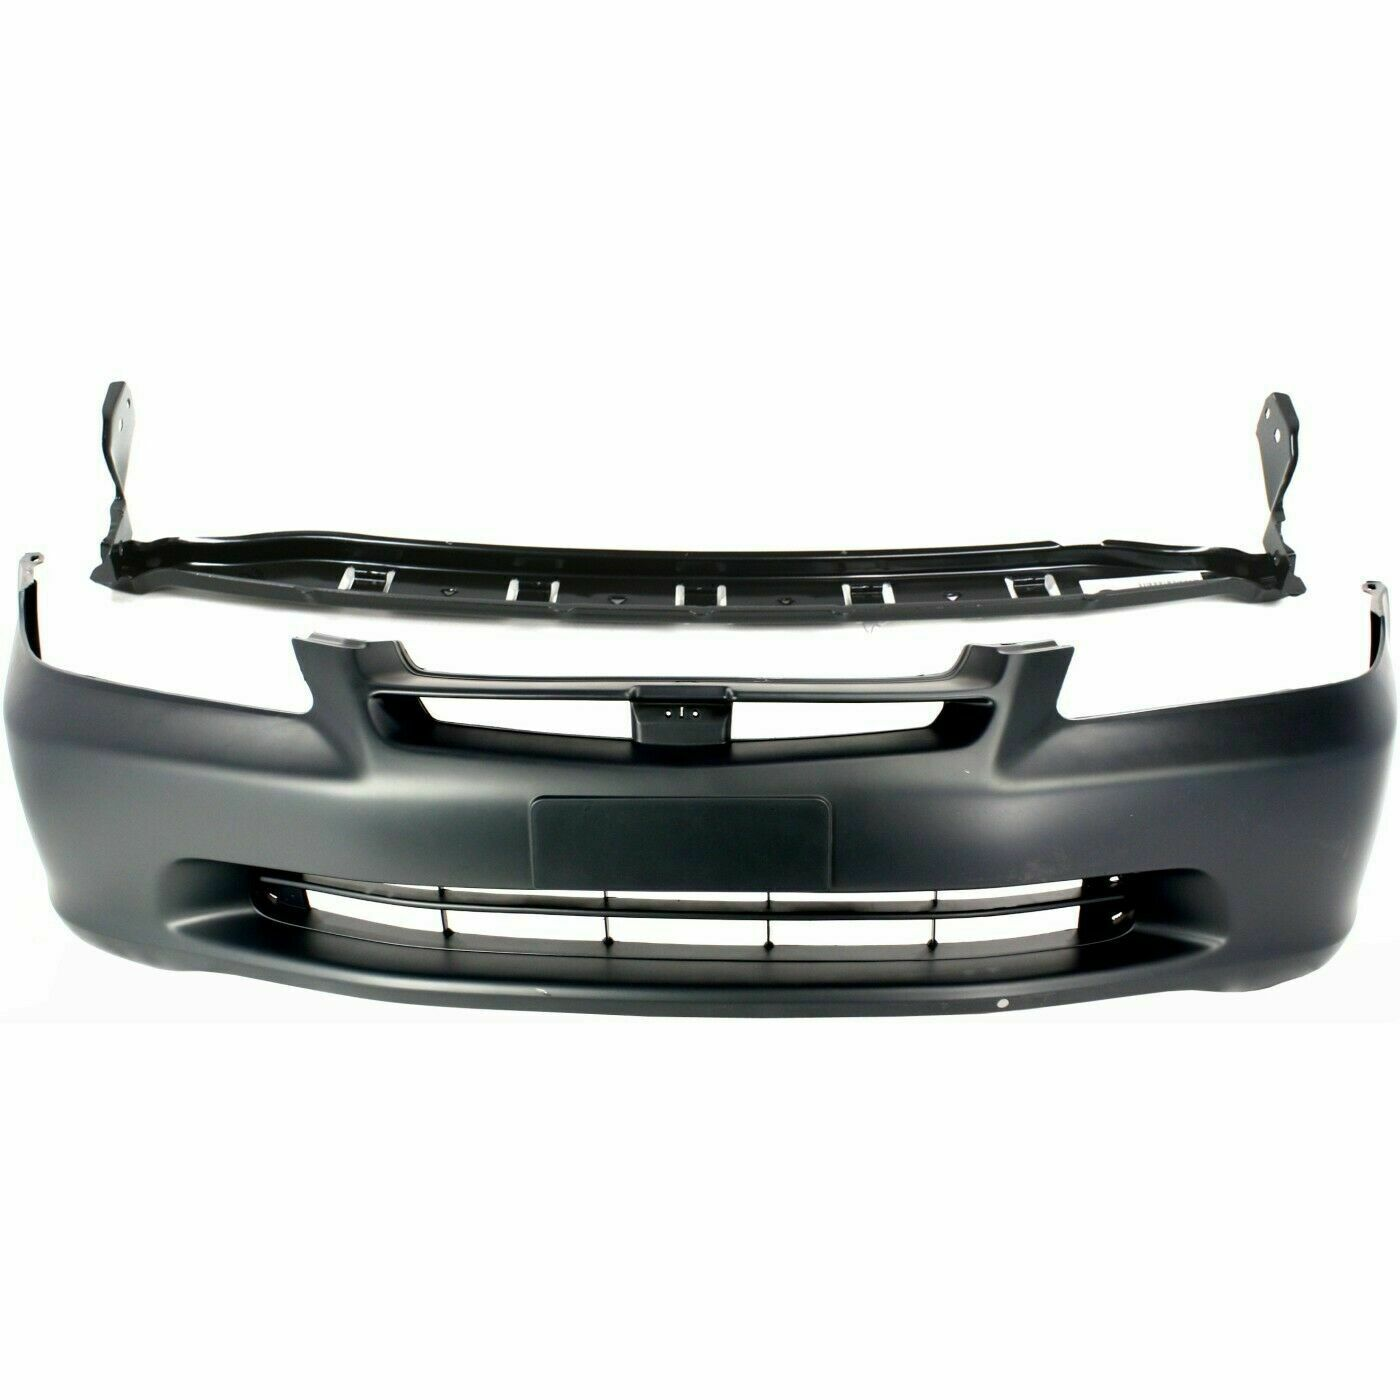 New HO1041102 Front Center Bumper Cover Support for Honda Accord 1998-2000